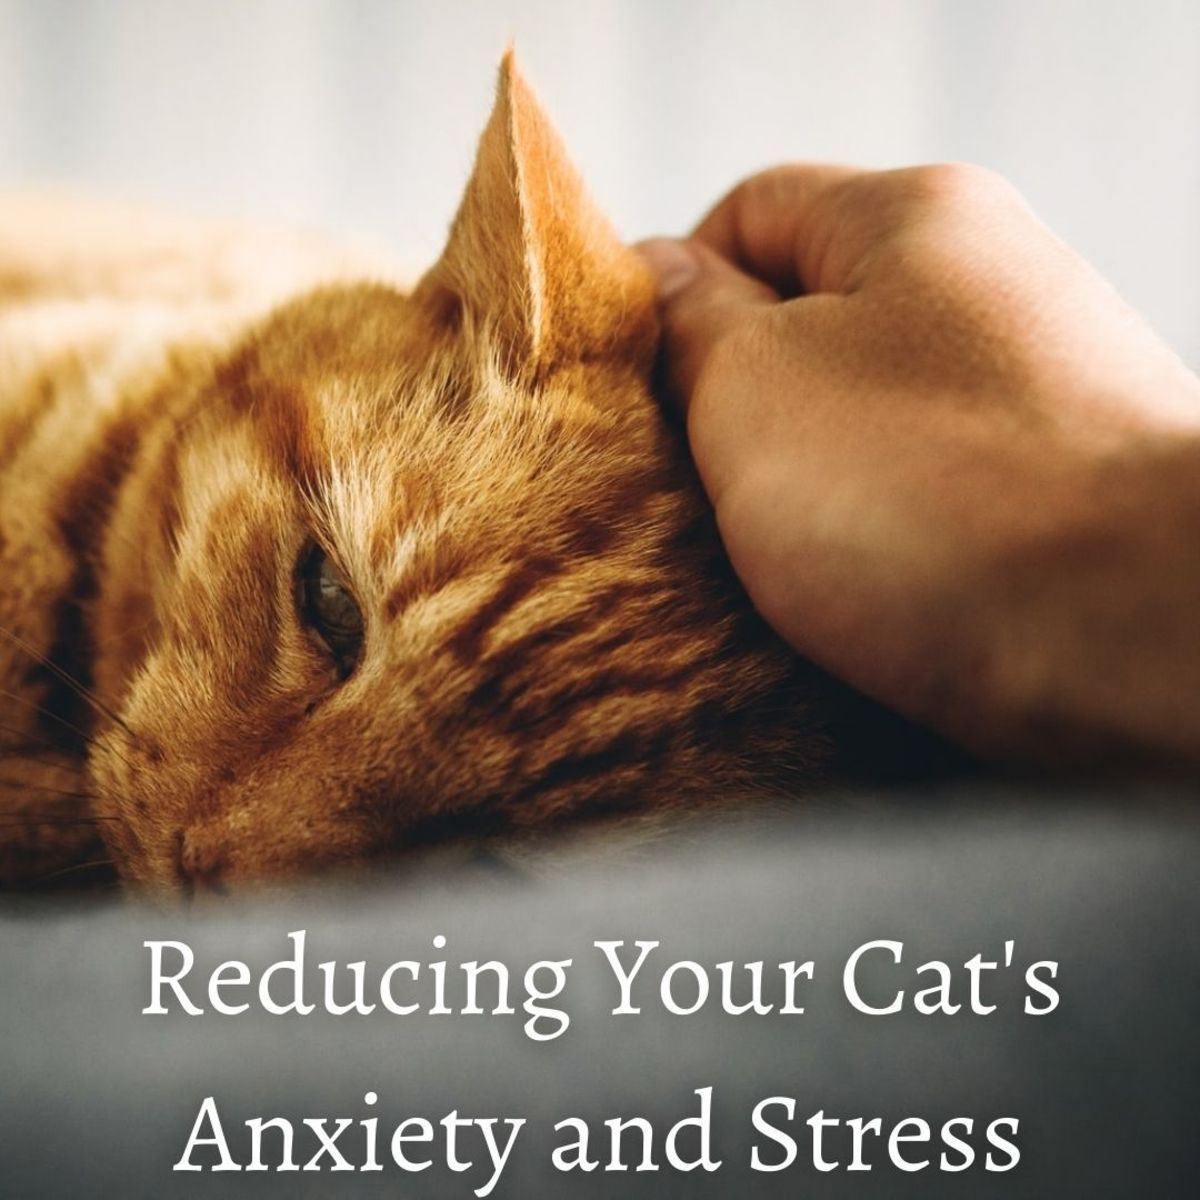 5 Steps to Reduce Your Cat's Anxiety and Stress